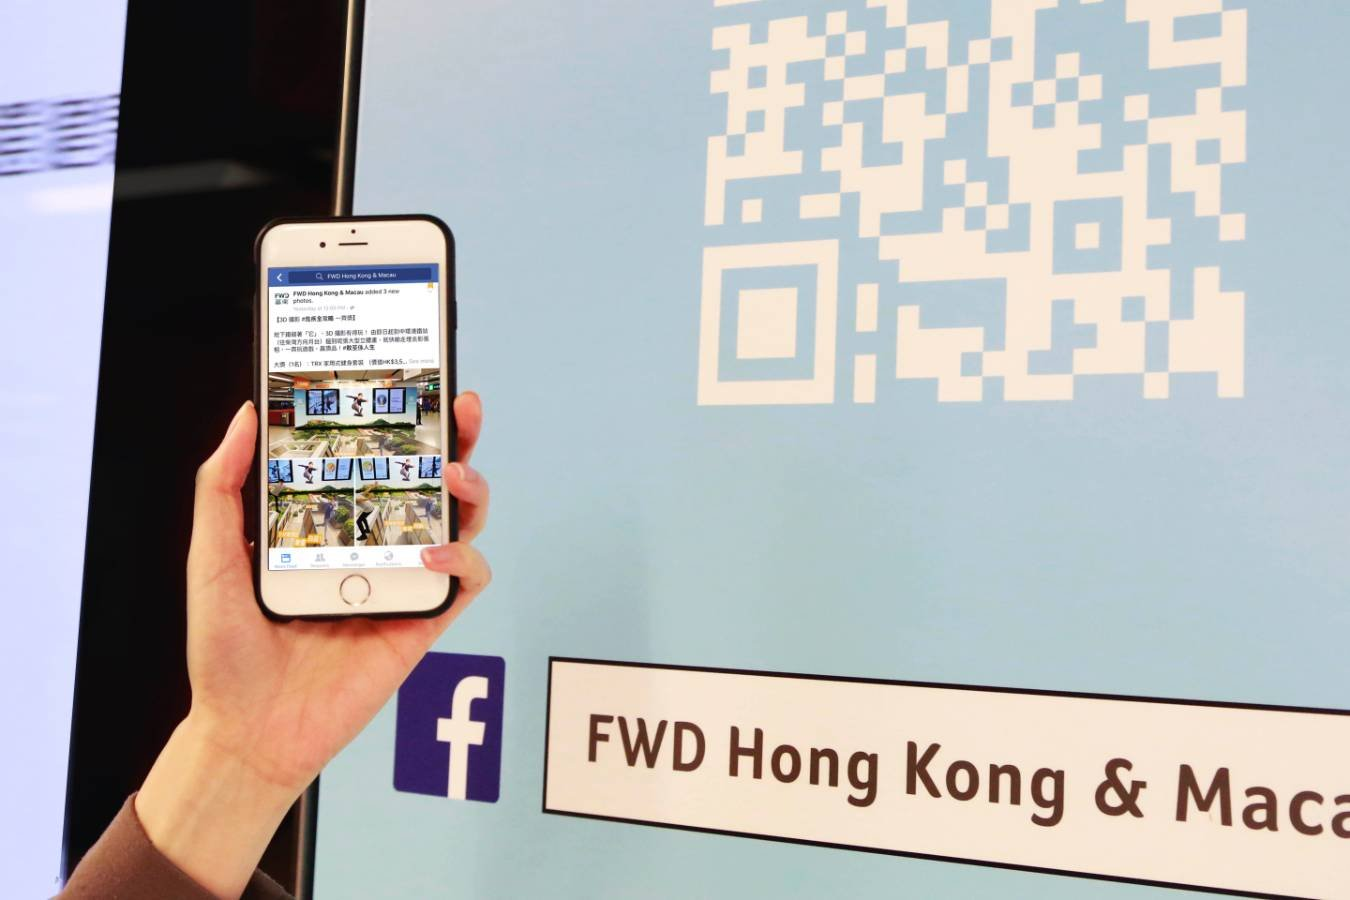 OOH mobile activation, JCDecaux Hong Kong Metro, Facebook and QR campaign